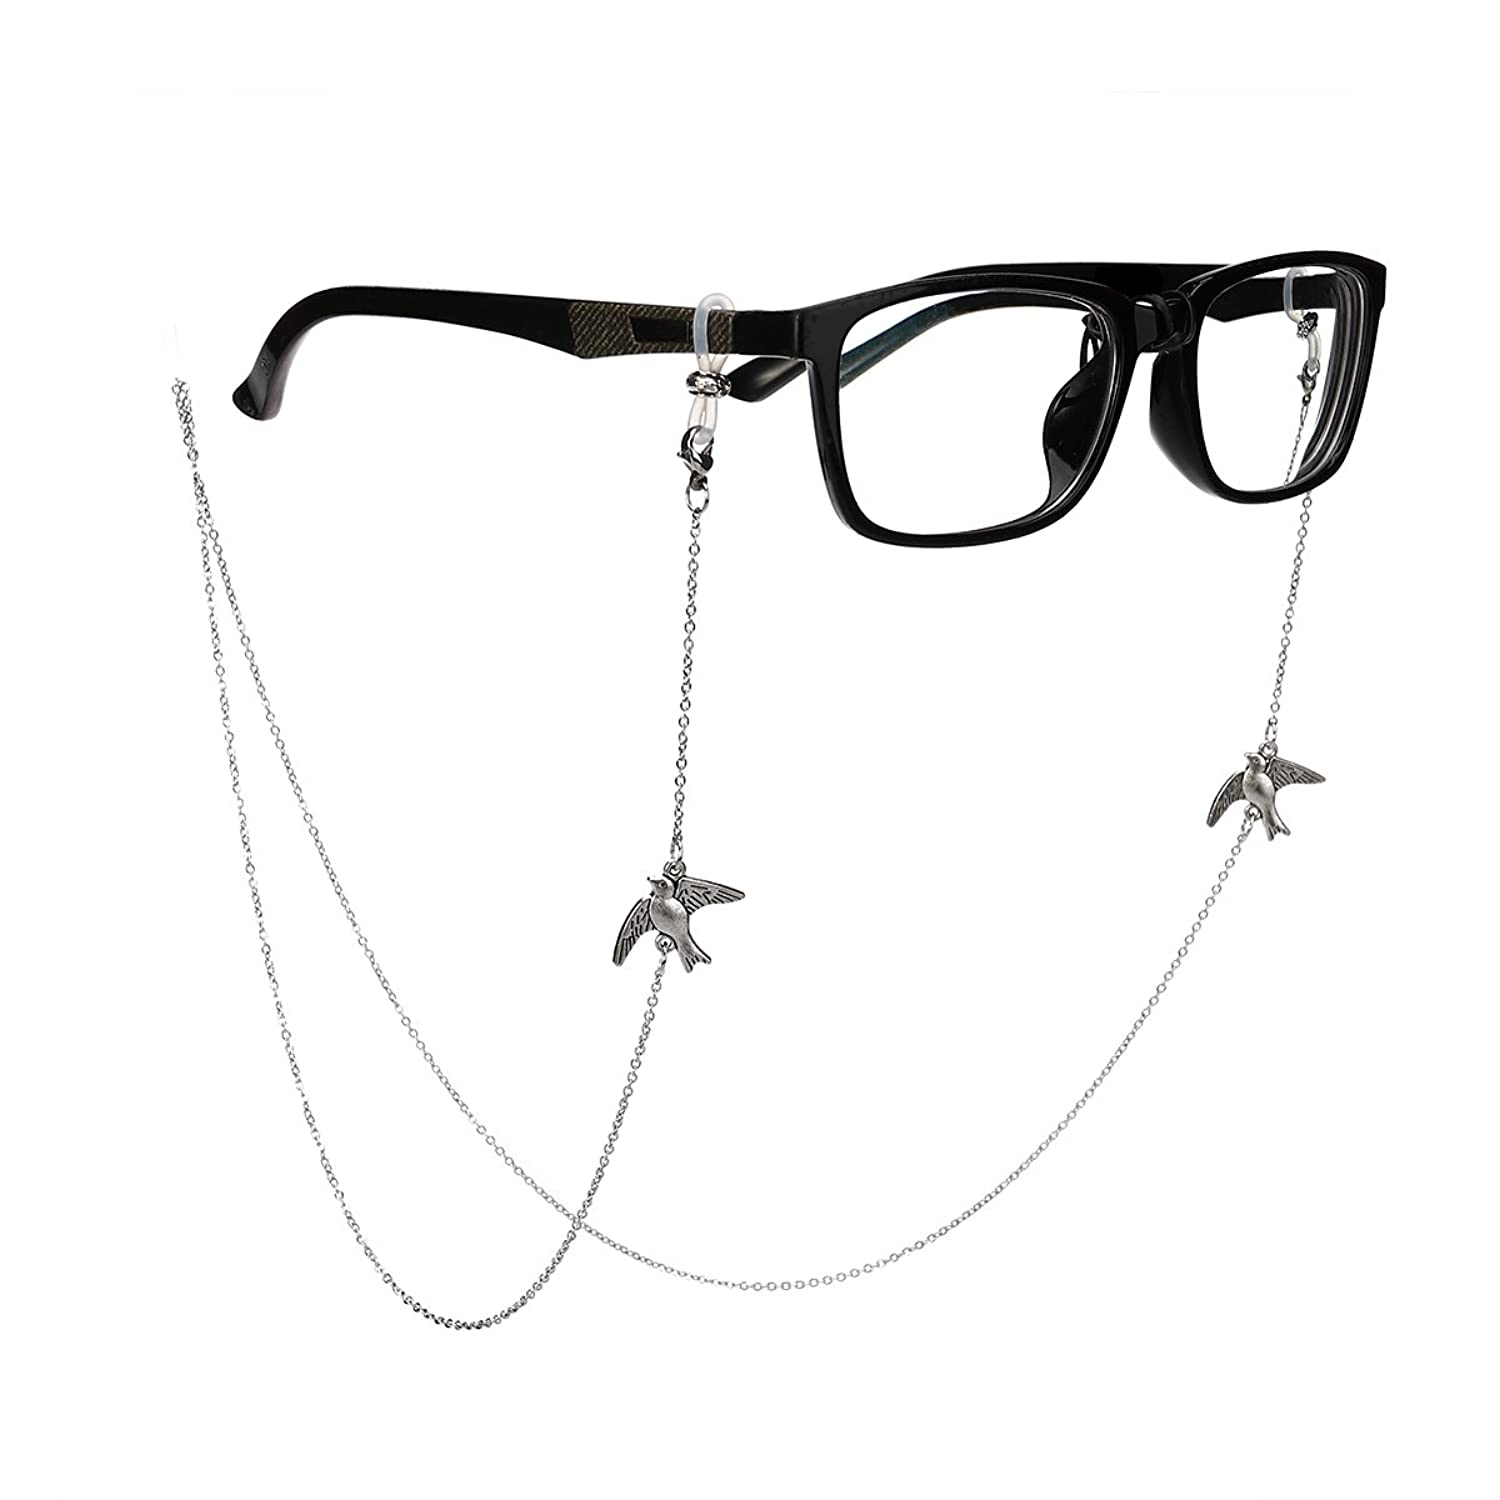 91dcbb77617 Tinksky Bronze Glasses Chain with Bird Eyeglass Cord Strap Sunglass Holder  Lanyard Spectacles Holder Sunglasses Neck